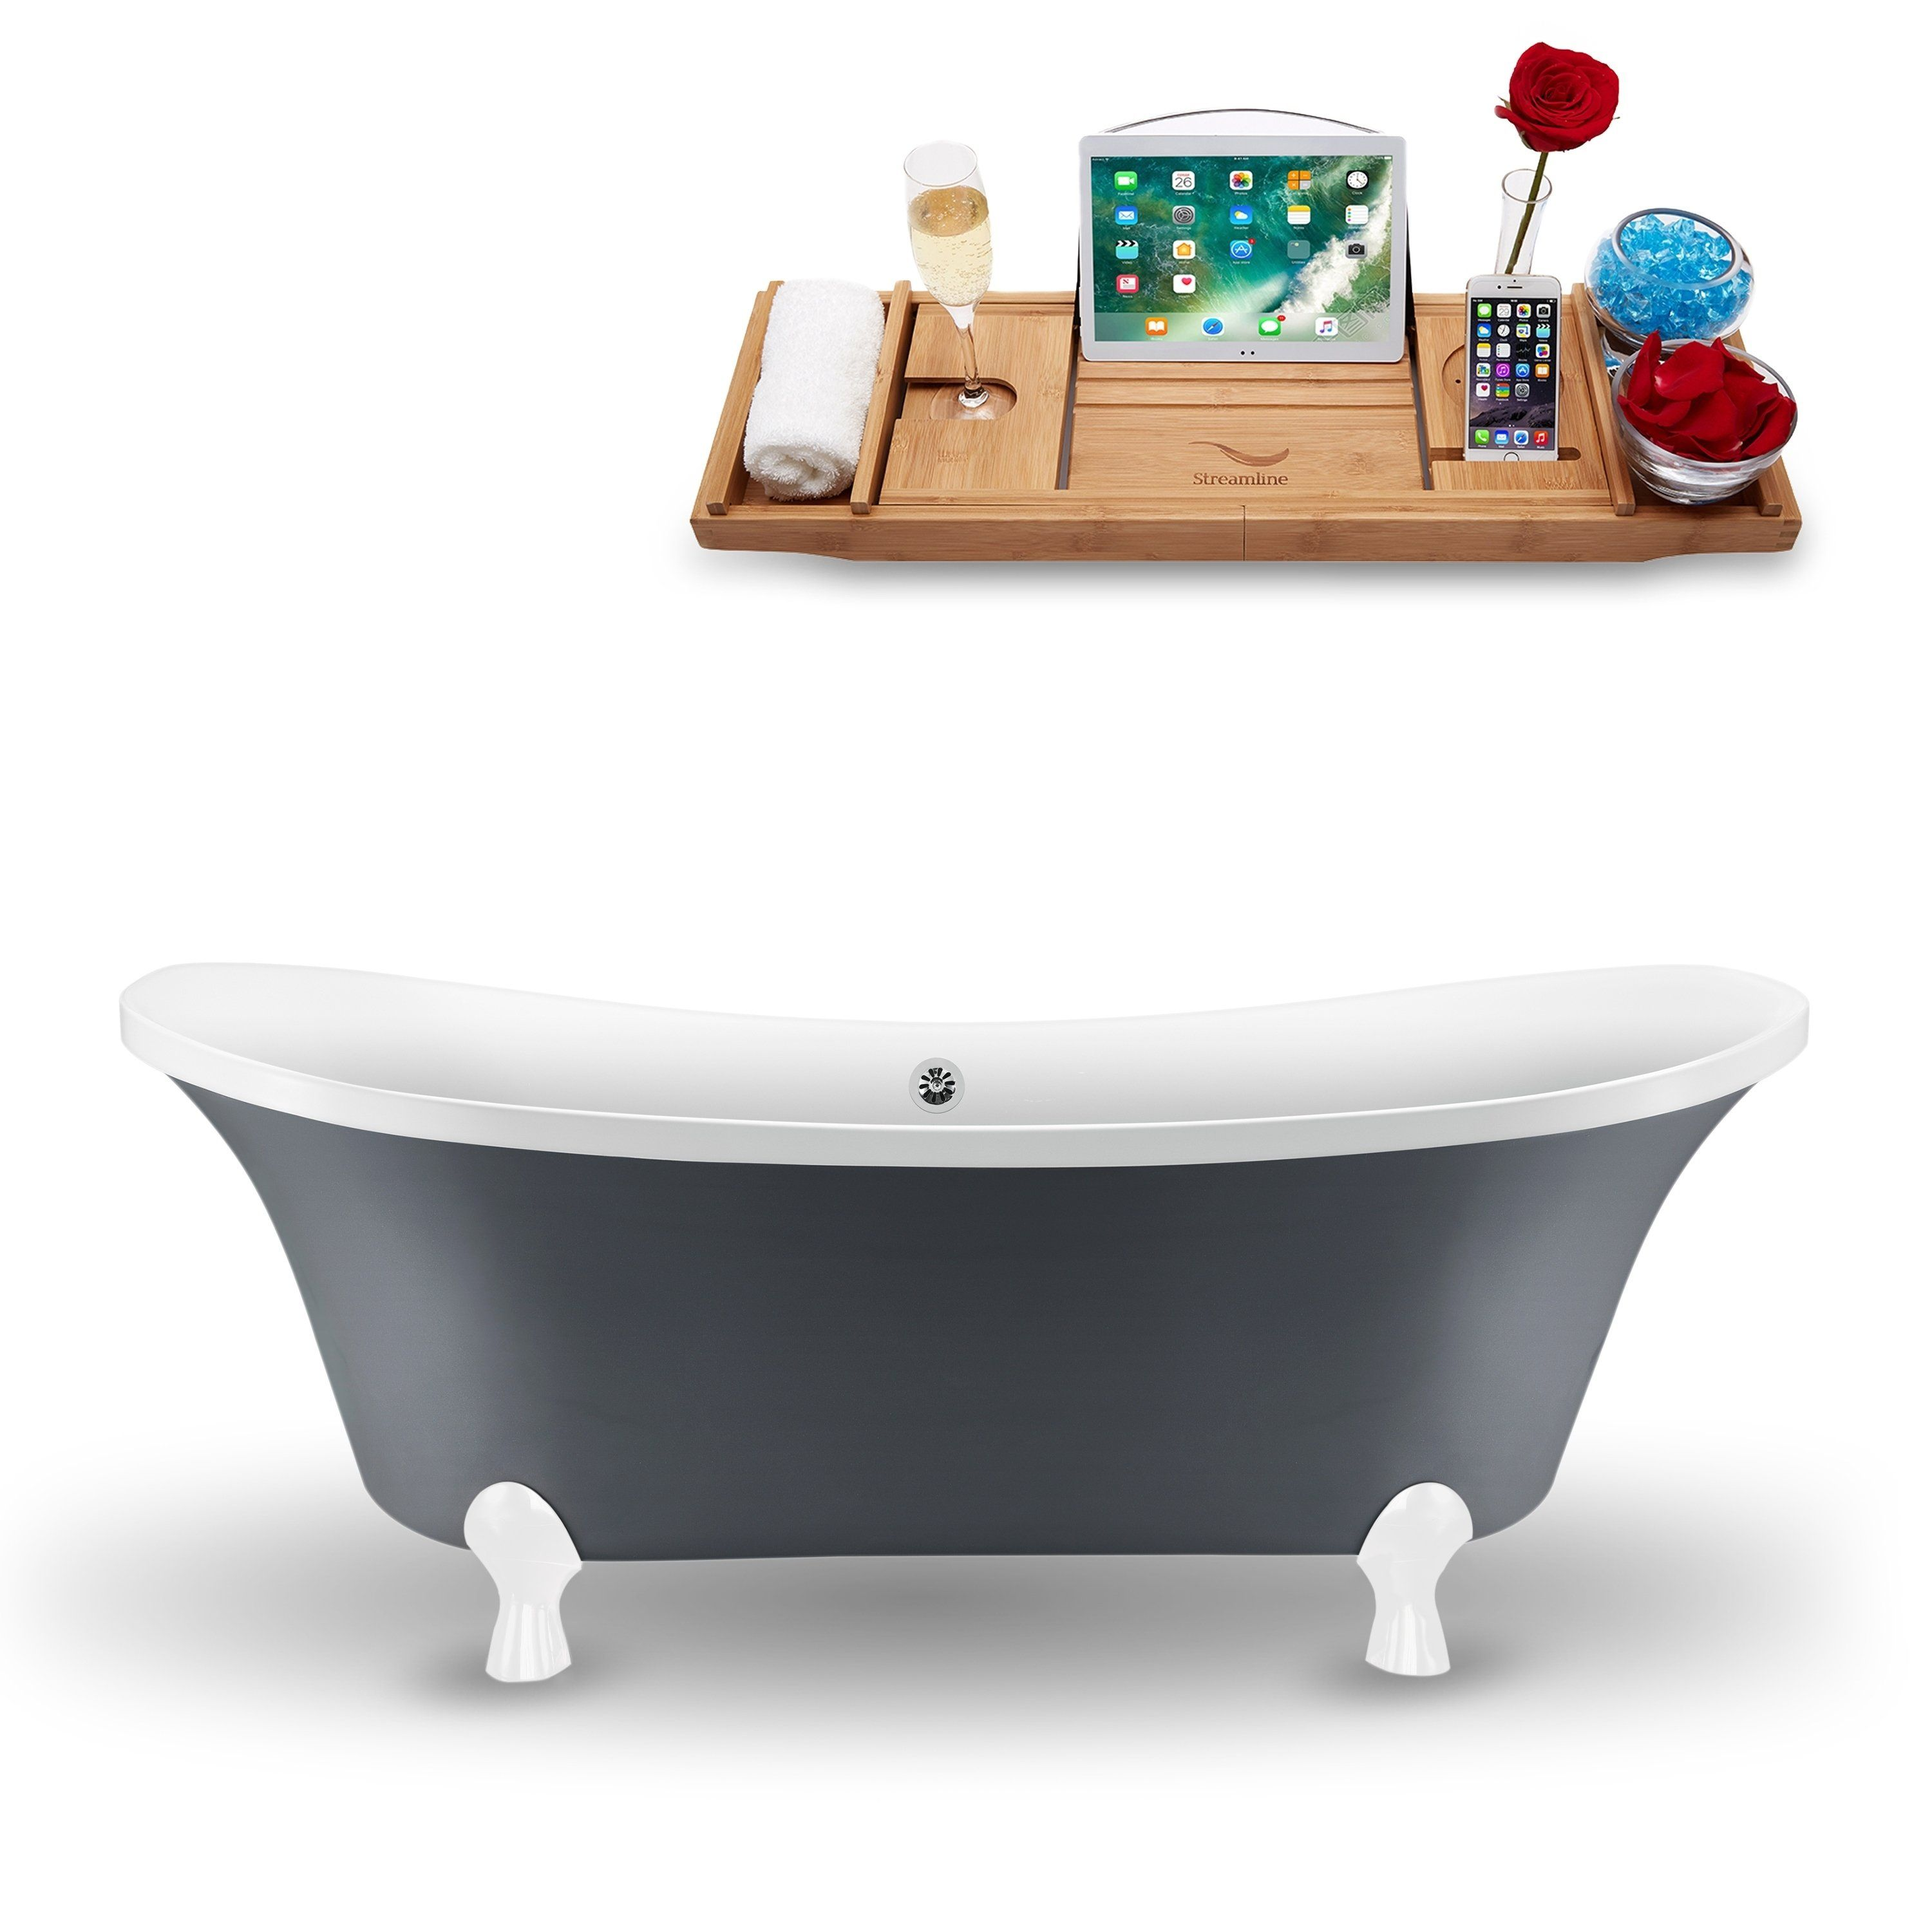 68 Streamline Clawfoot Tub And Tray With External Drain Gray